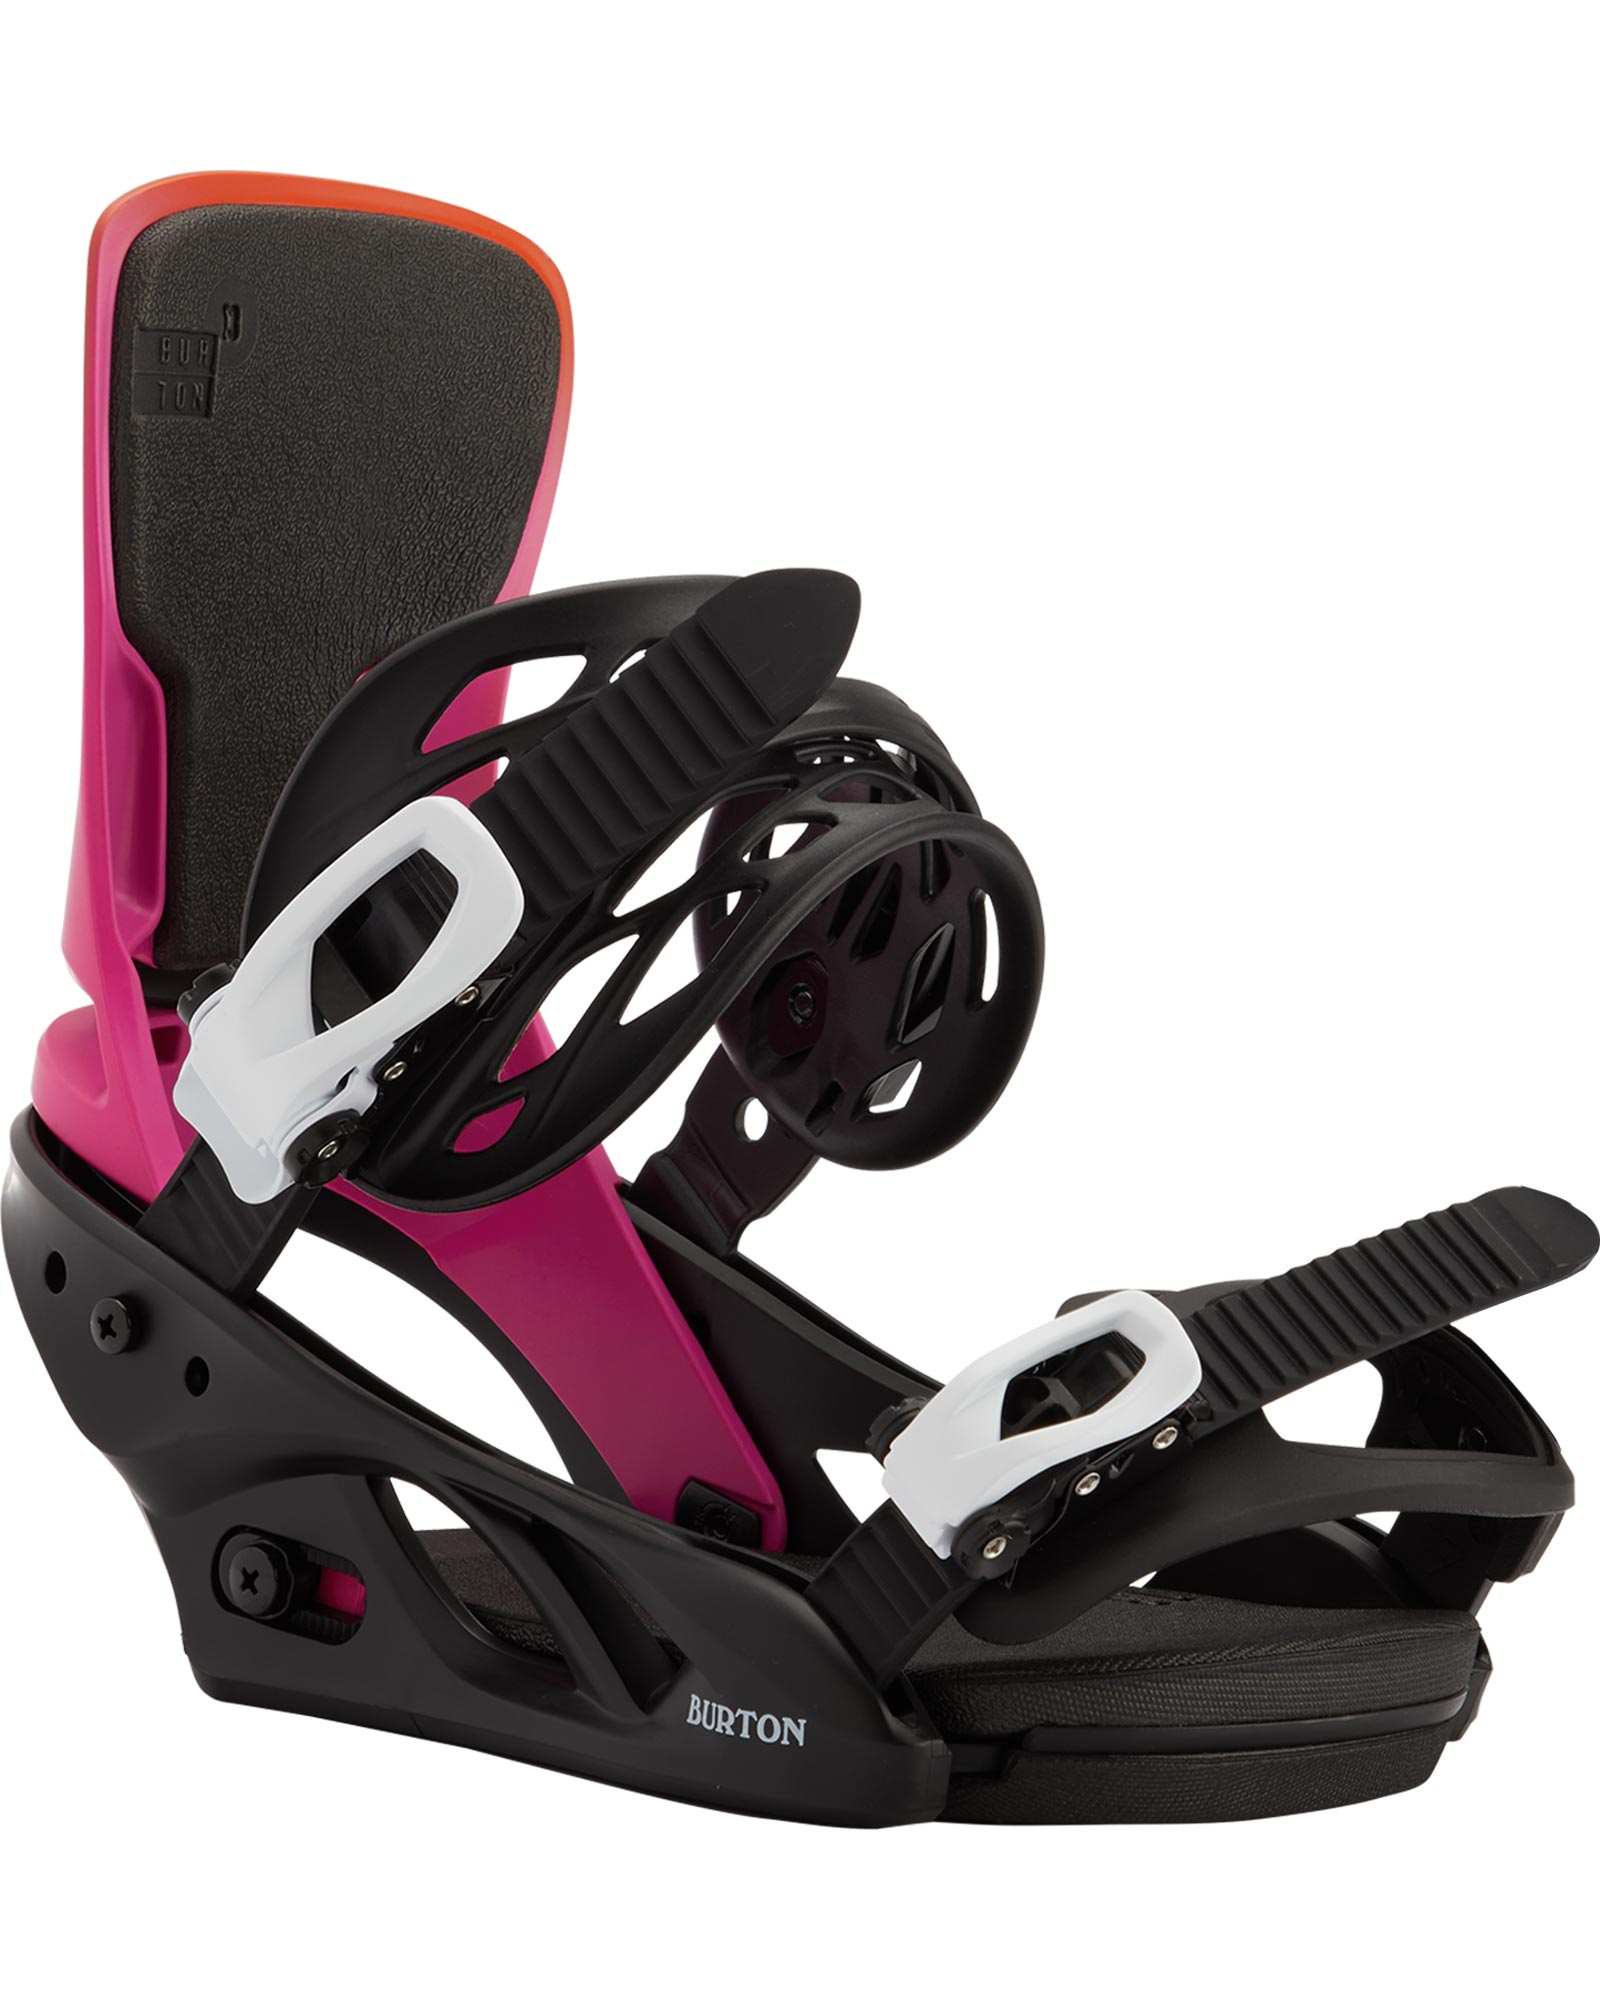 Burton Women's Lexa Snowboard Bindings 2020 / 2021 0